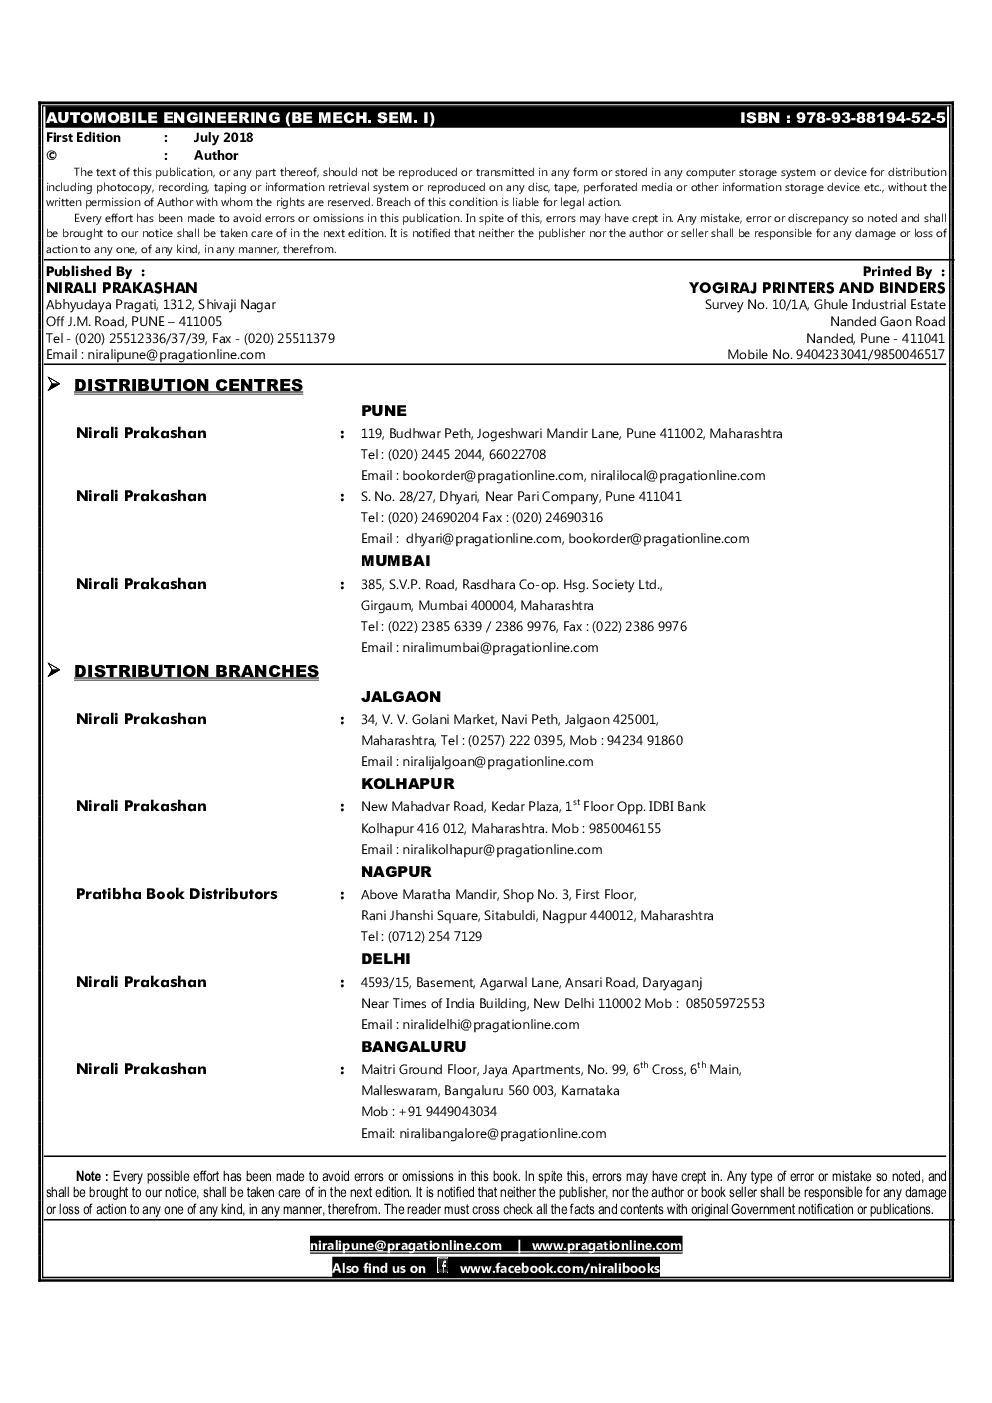 Automobile Engineering - Page 3